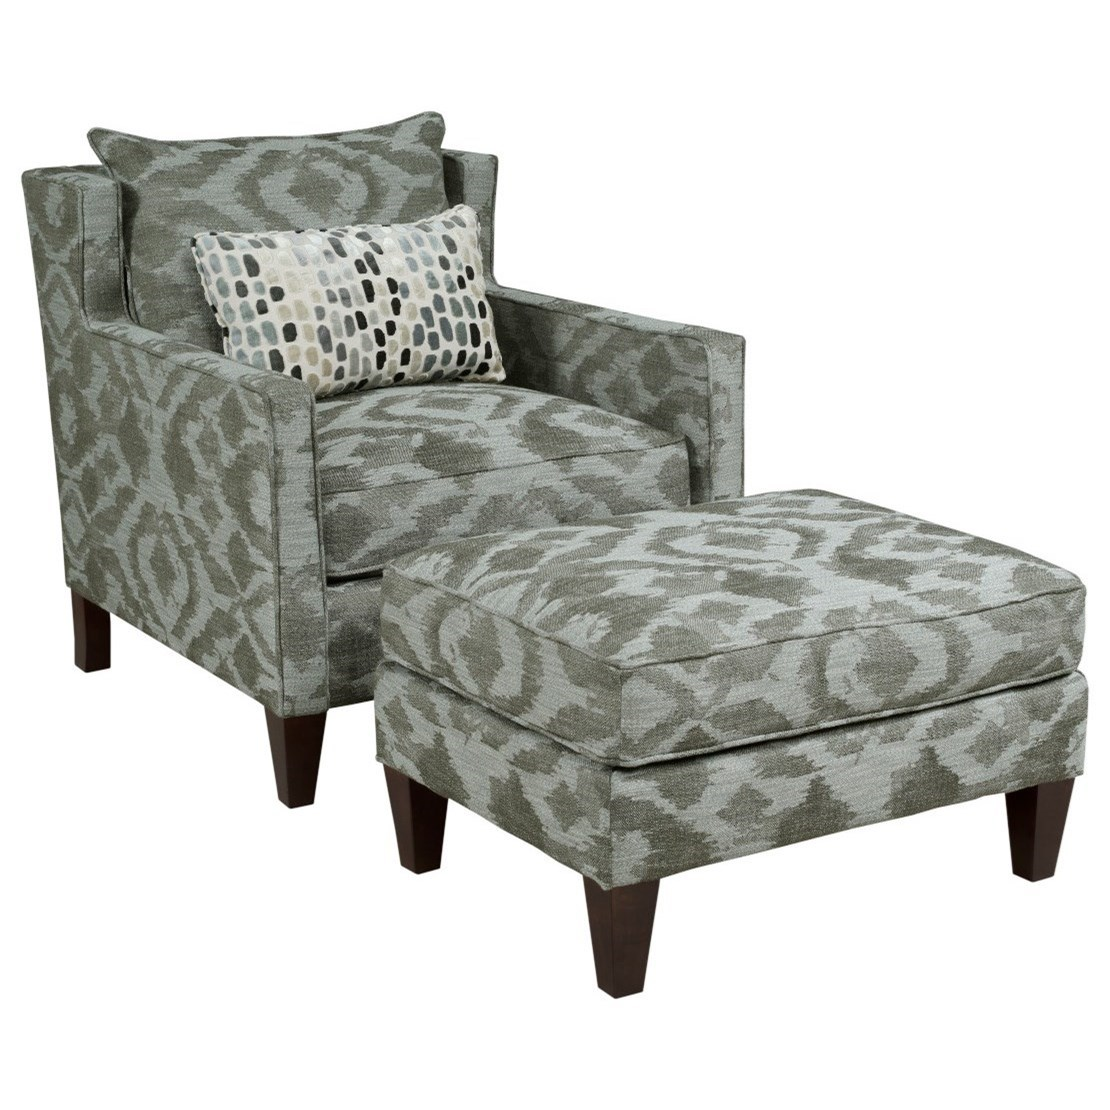 Alta Chair & Ottoman Set by Kincaid Furniture at Wilson's Furniture